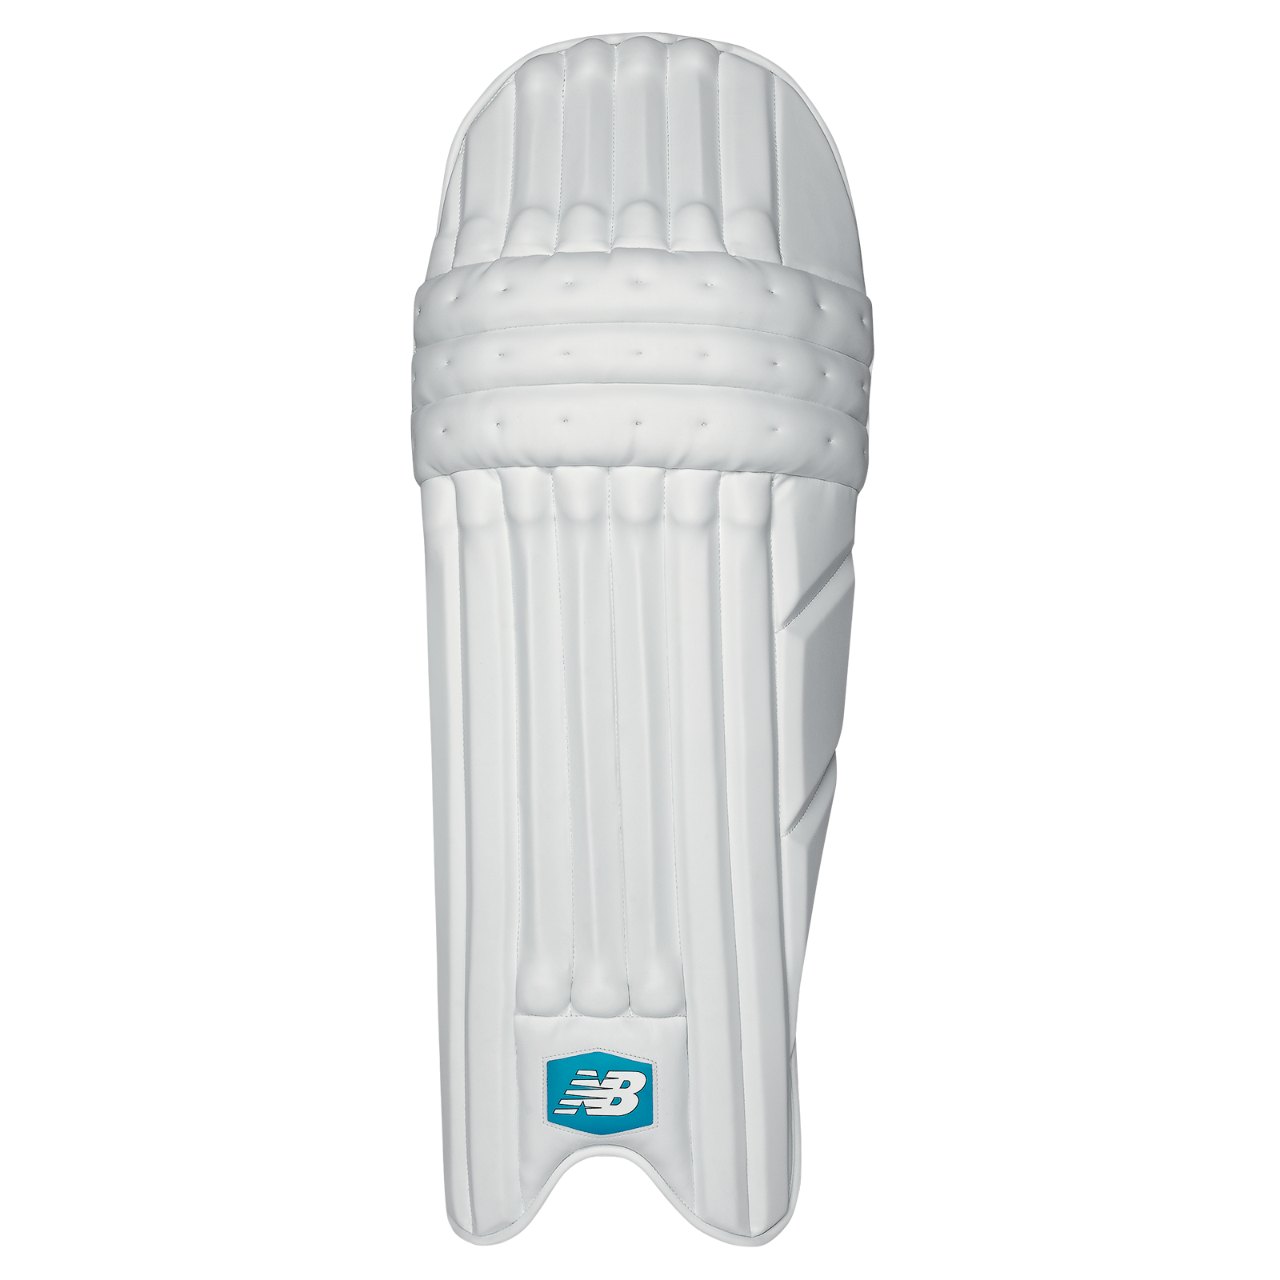 2021 New Balance DC 1080 Batting Pads